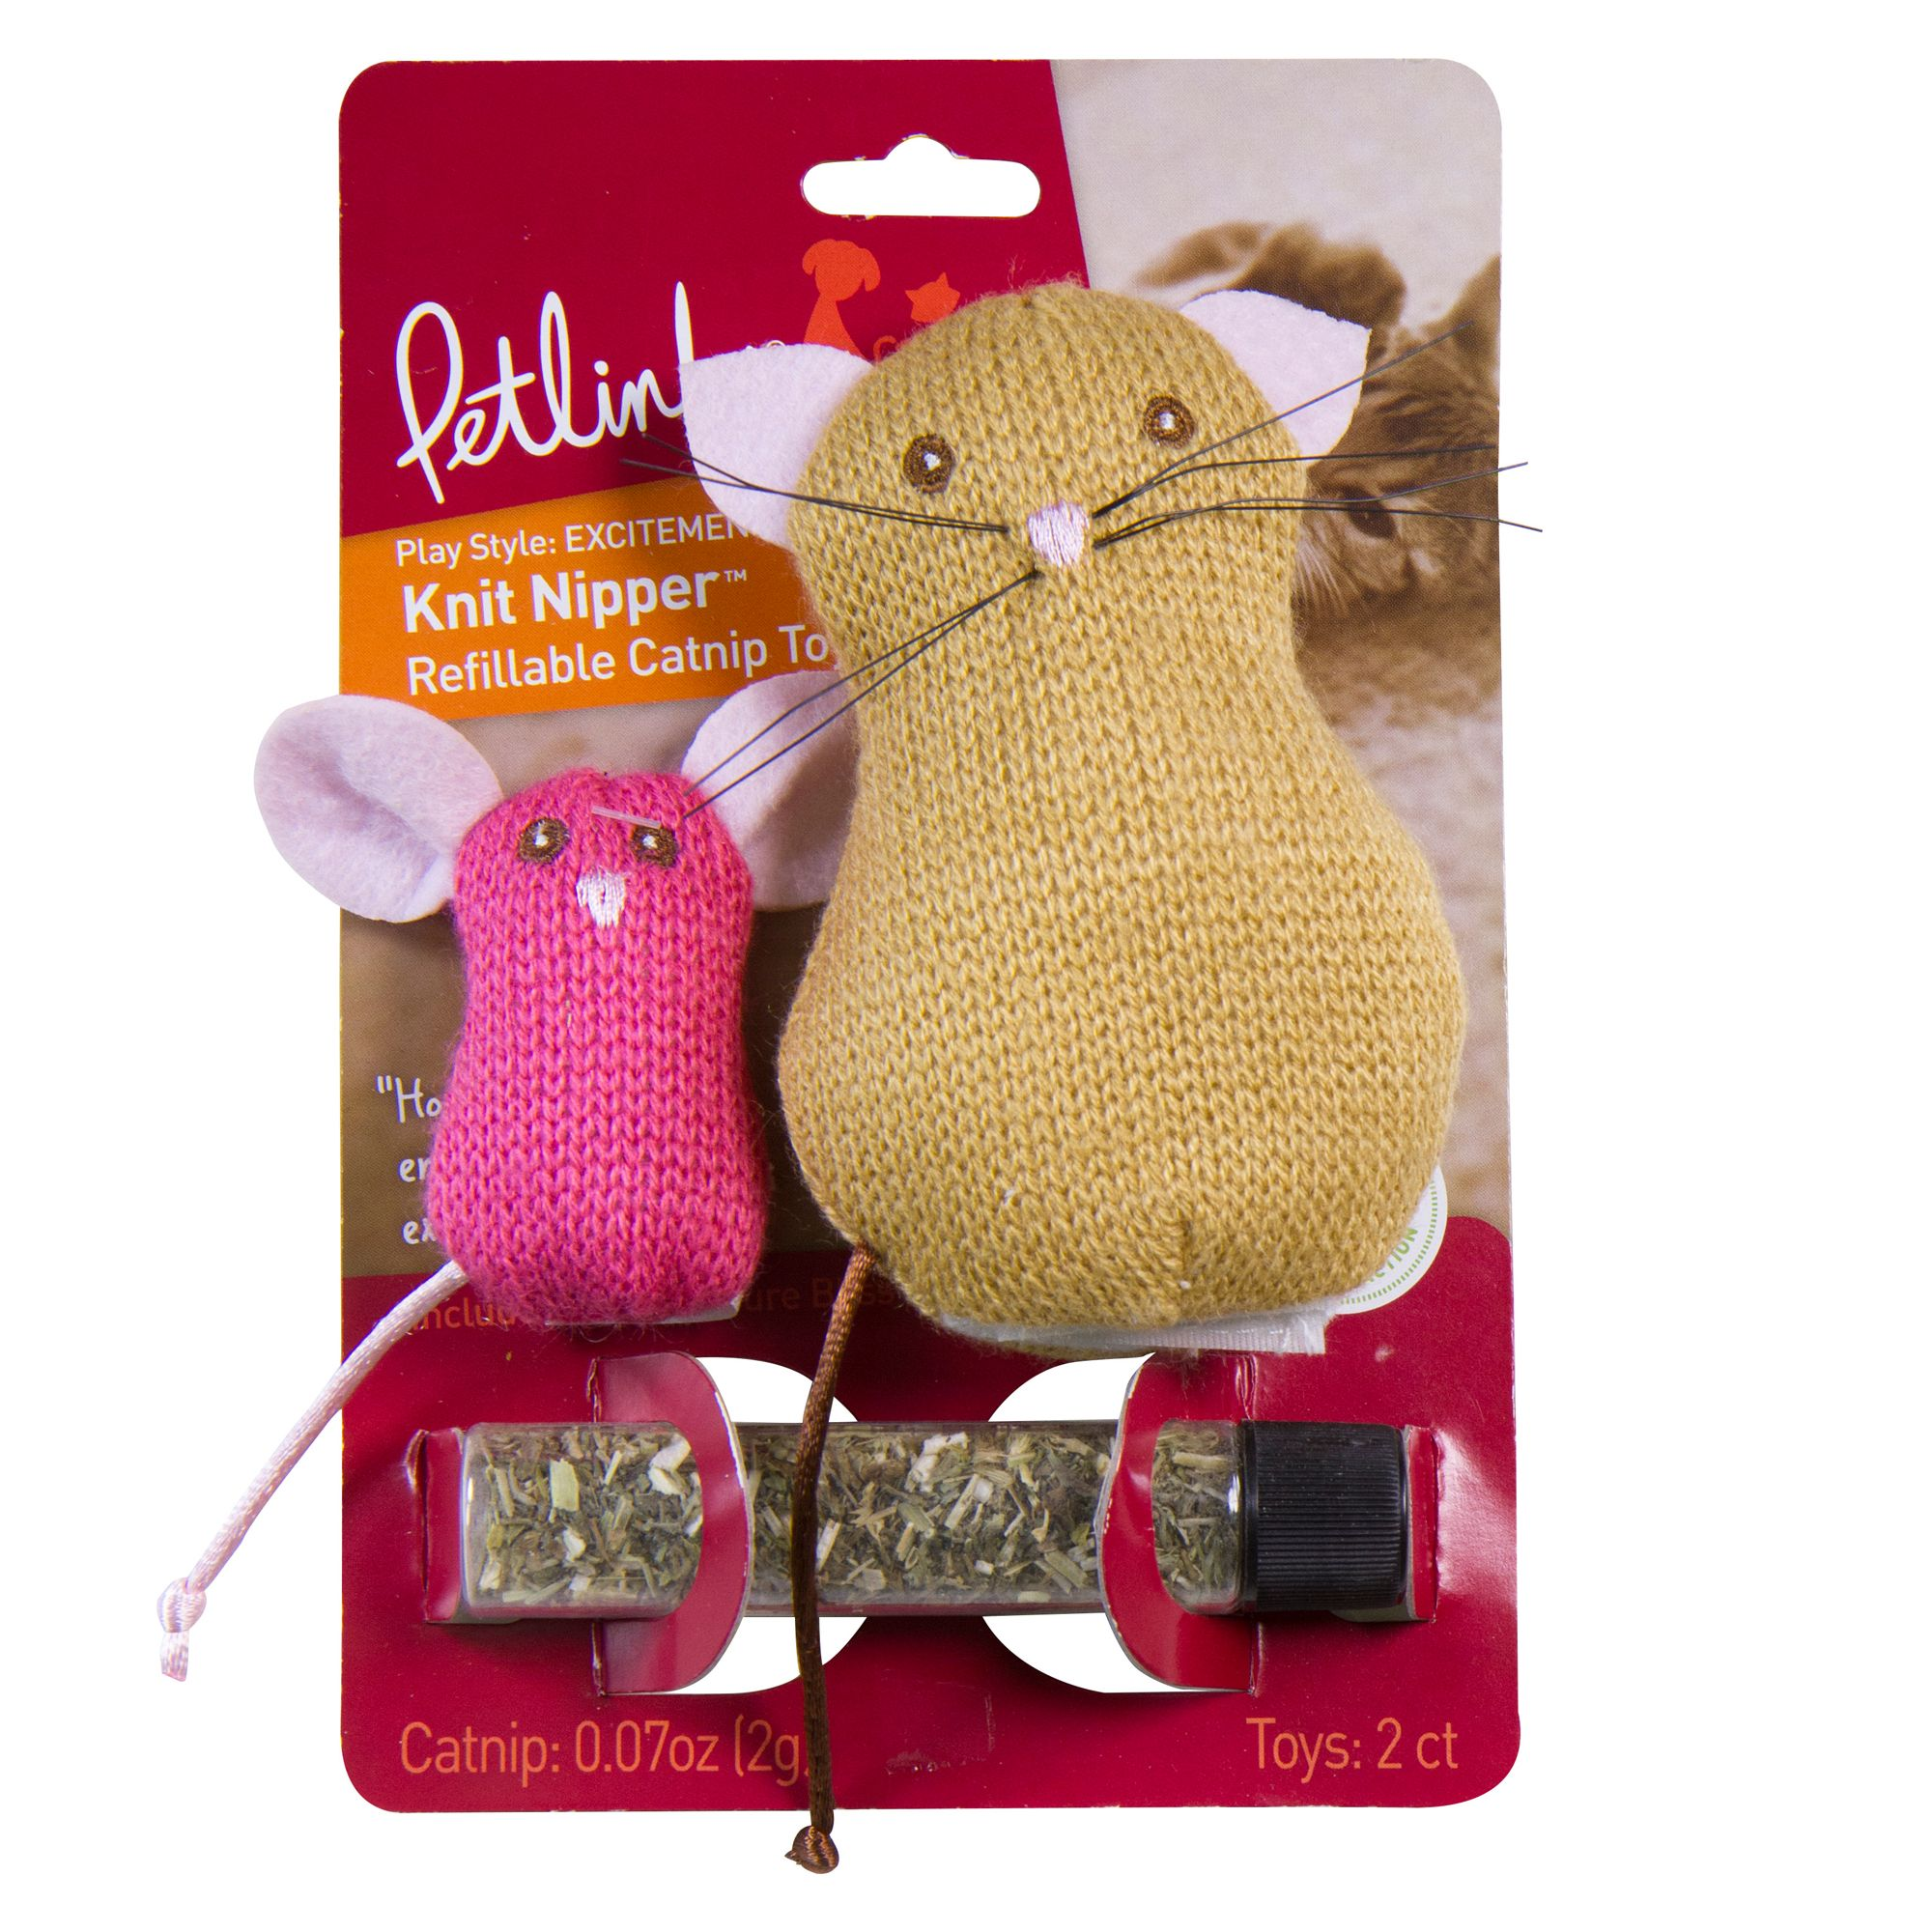 Petlinks Knit Nipper, Cat and Mouse Cat Toy - Catnip 5235533